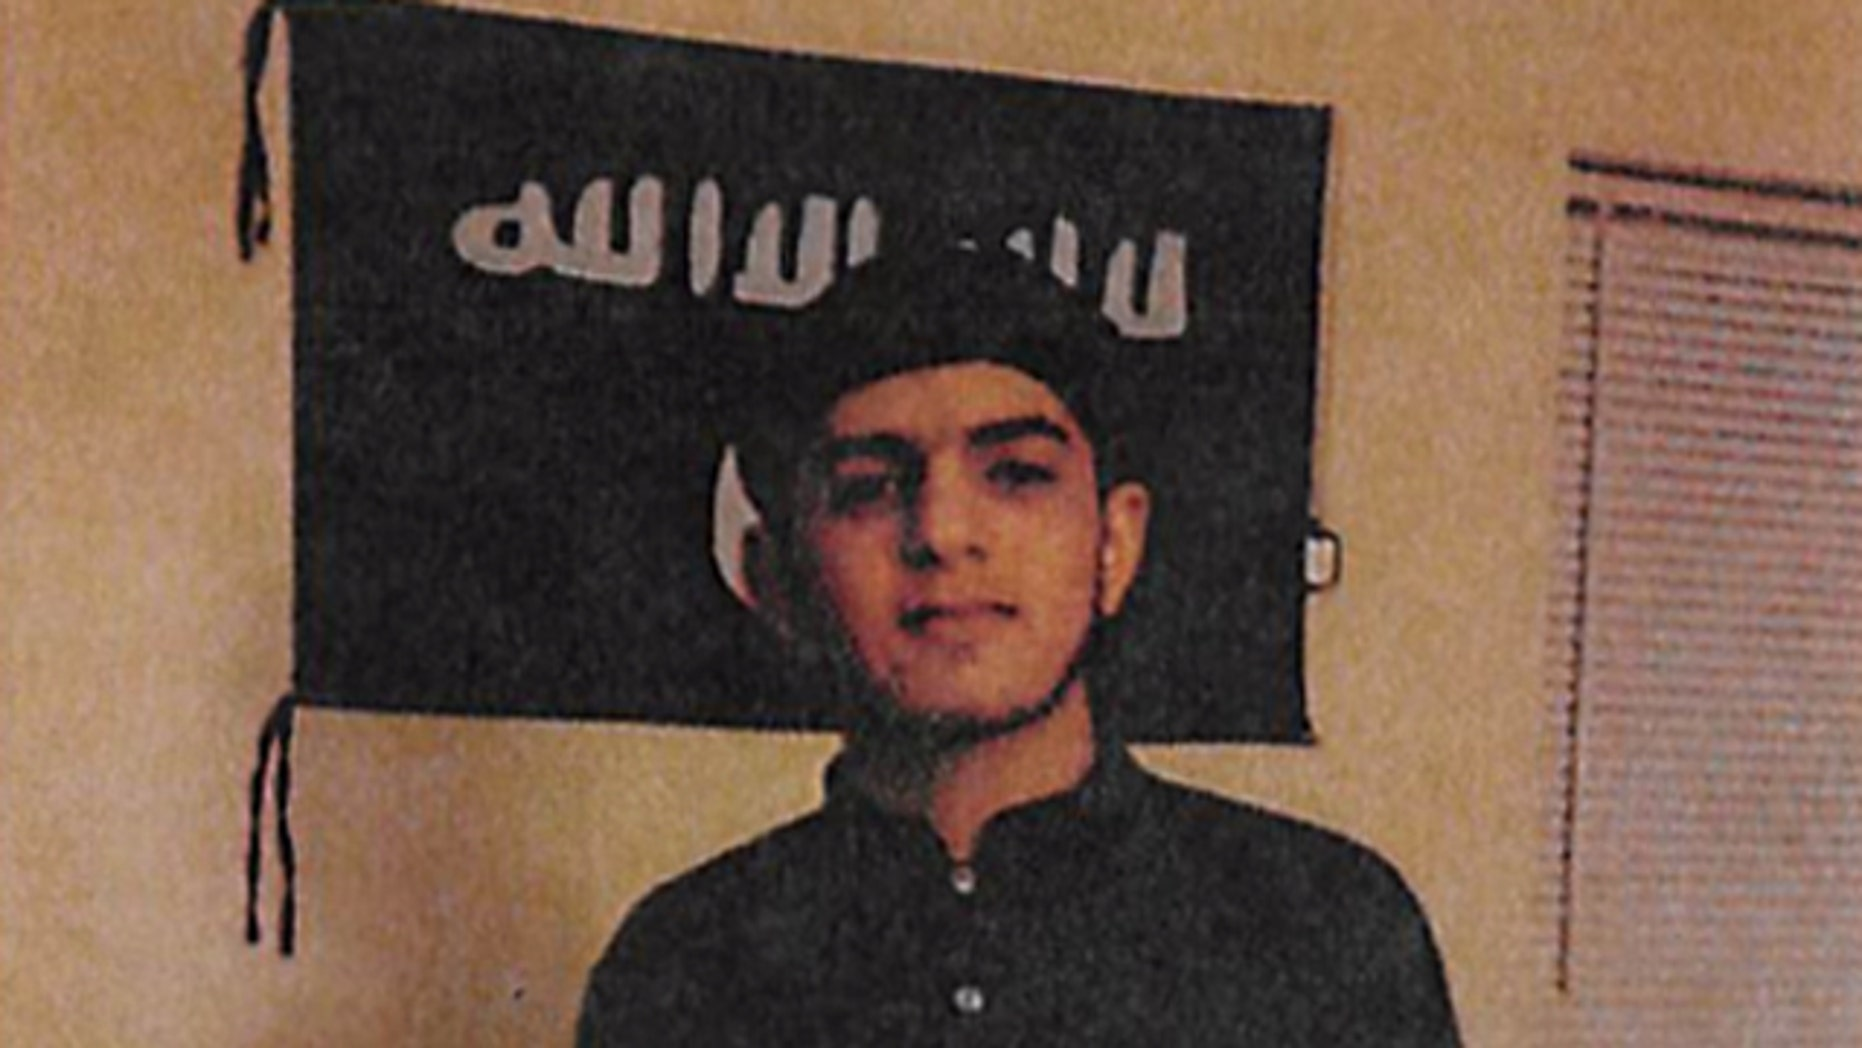 This image from June 2015 shows Akram Musleh, of Brownsburg, Ind., posing in front of an ISIS flag